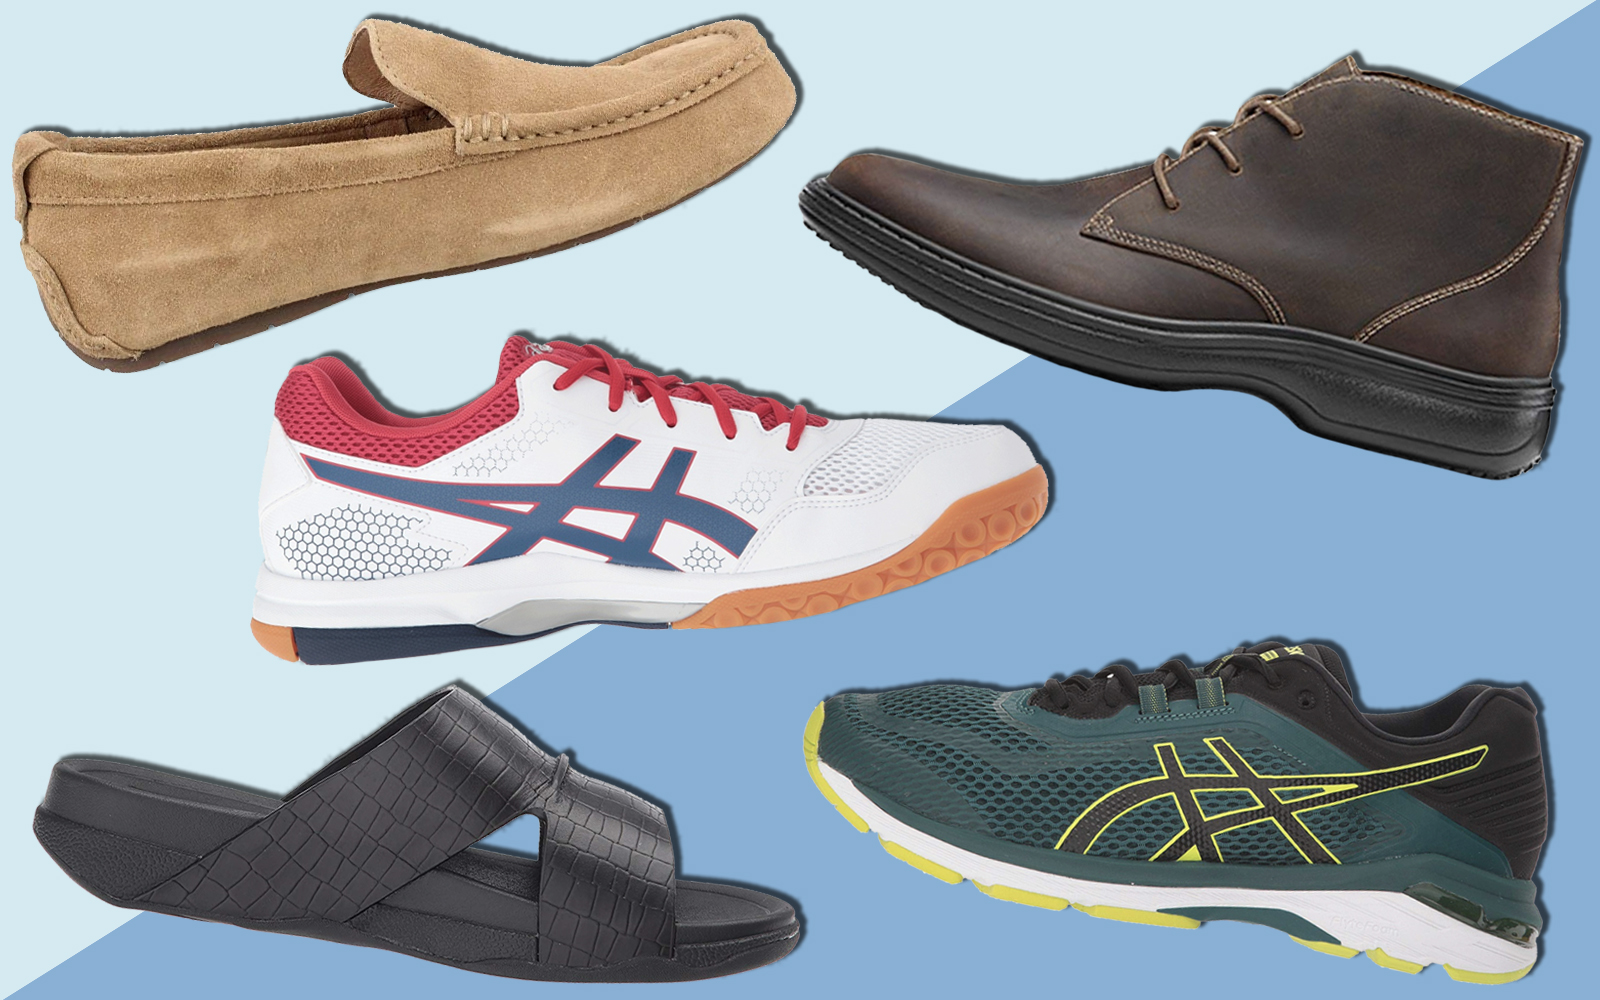 The Best Comfy Walking Shoes for Men, According to Podiatrists